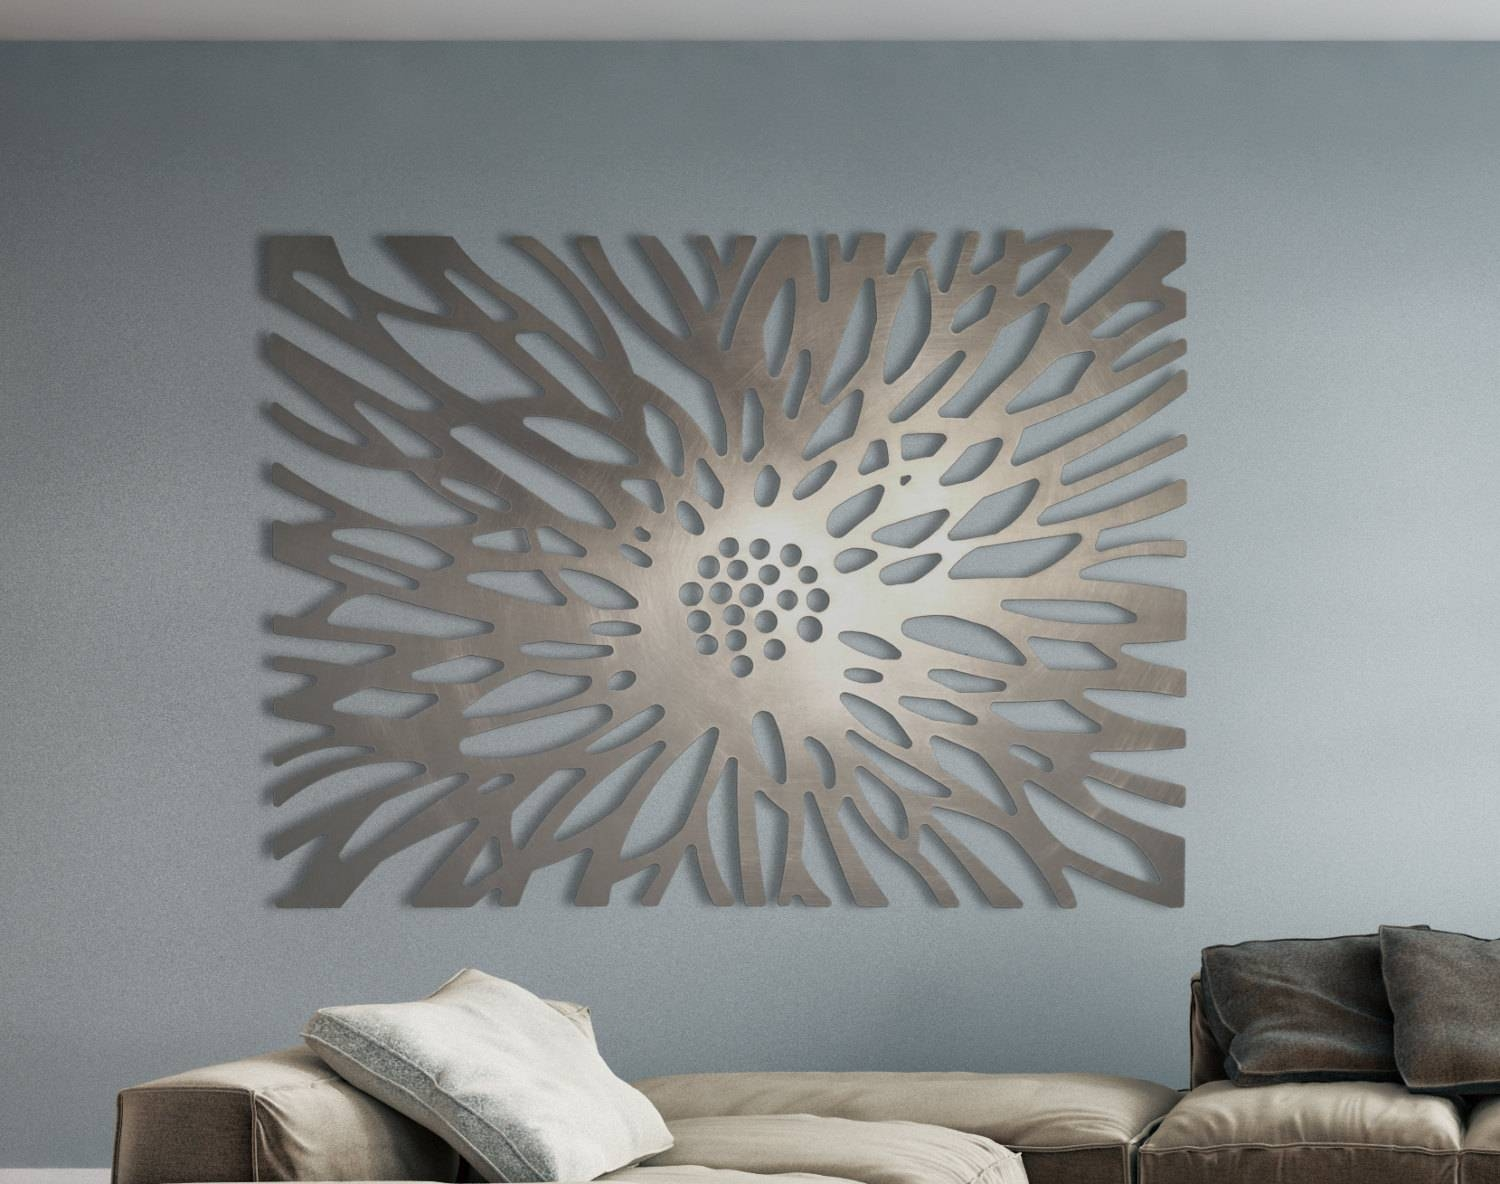 Modern Design Laser Cut Wall Art Exclusive Laser Metal – Wall Shelves Inside Recent Exclusive Wall Art (View 11 of 20)